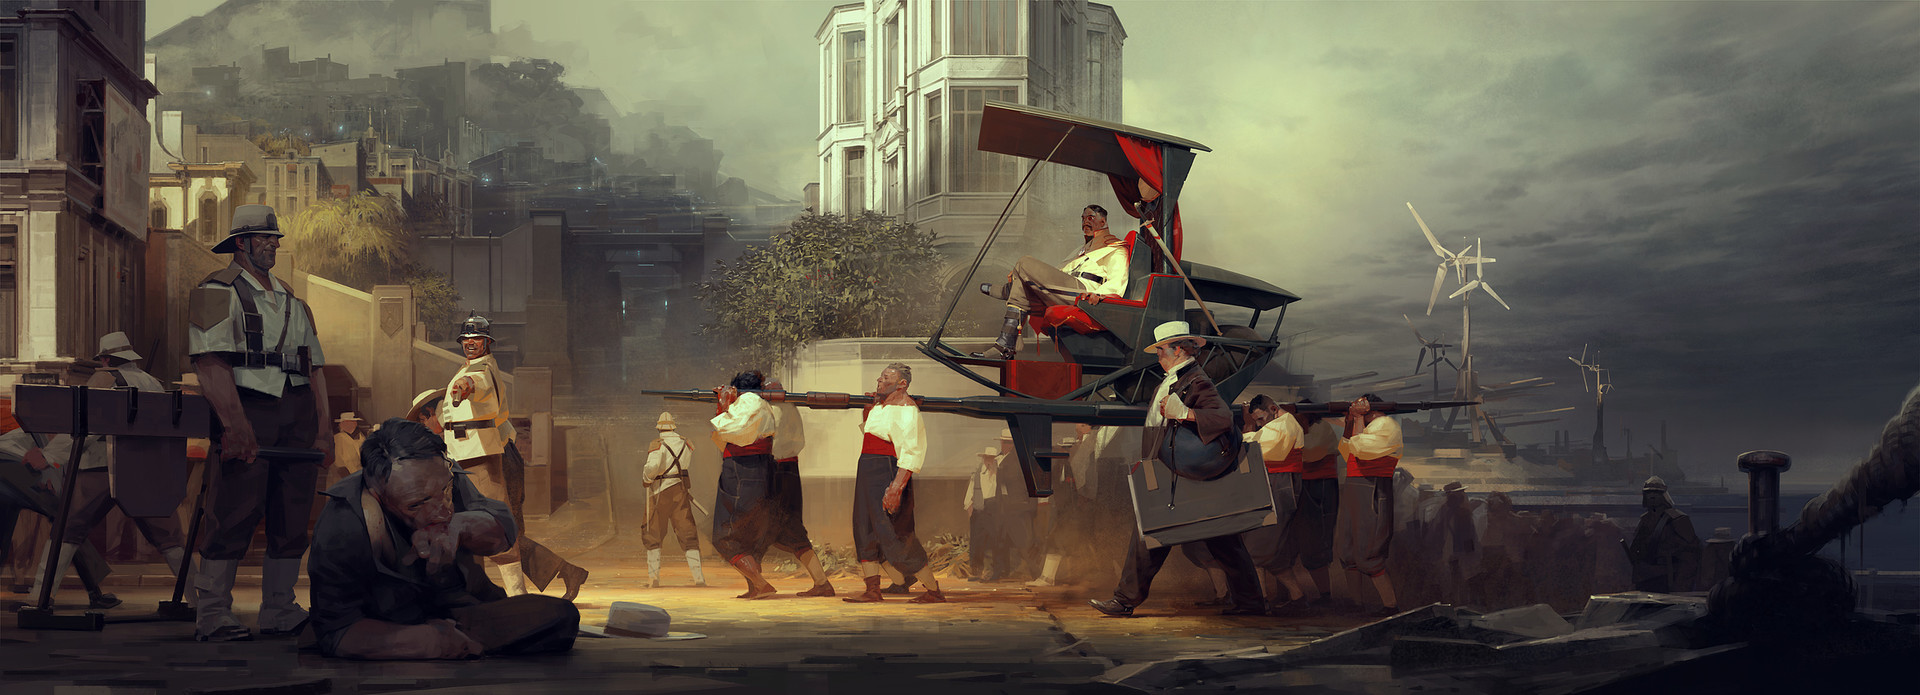 Sergey Kolesov Digital Painting Concept Art Dishonored 2 The Duke